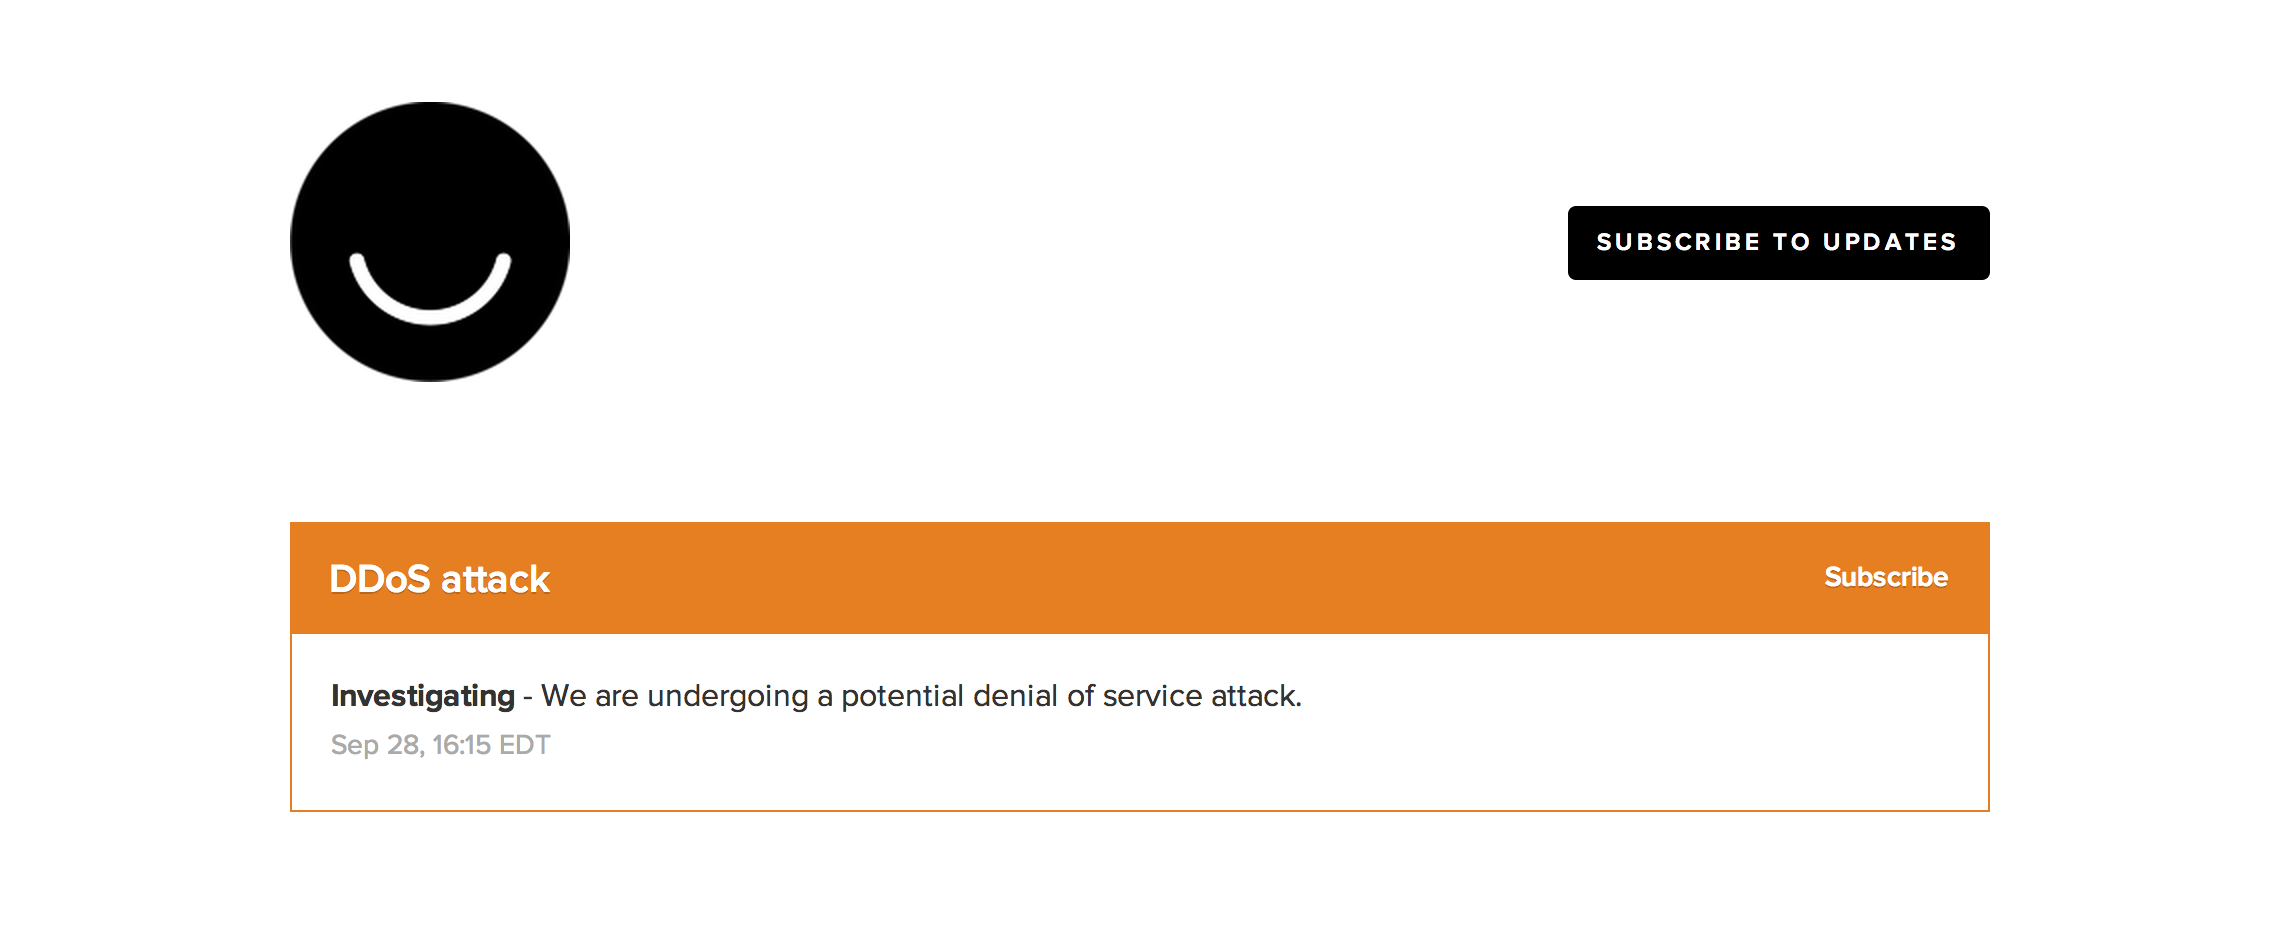 Ello Experiences Its First DDoS Attack (Update)